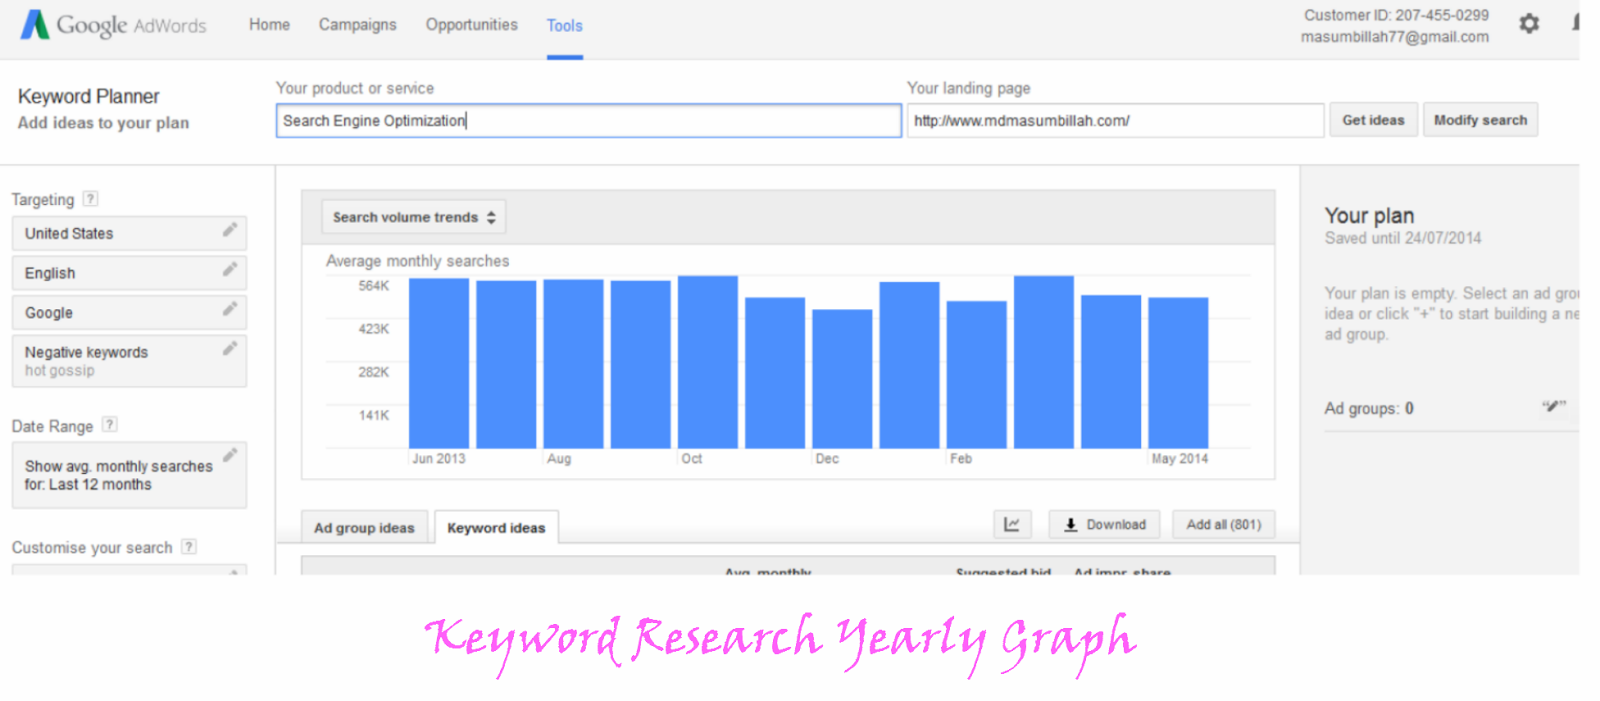 Keyword Search Yearly Graph Idea